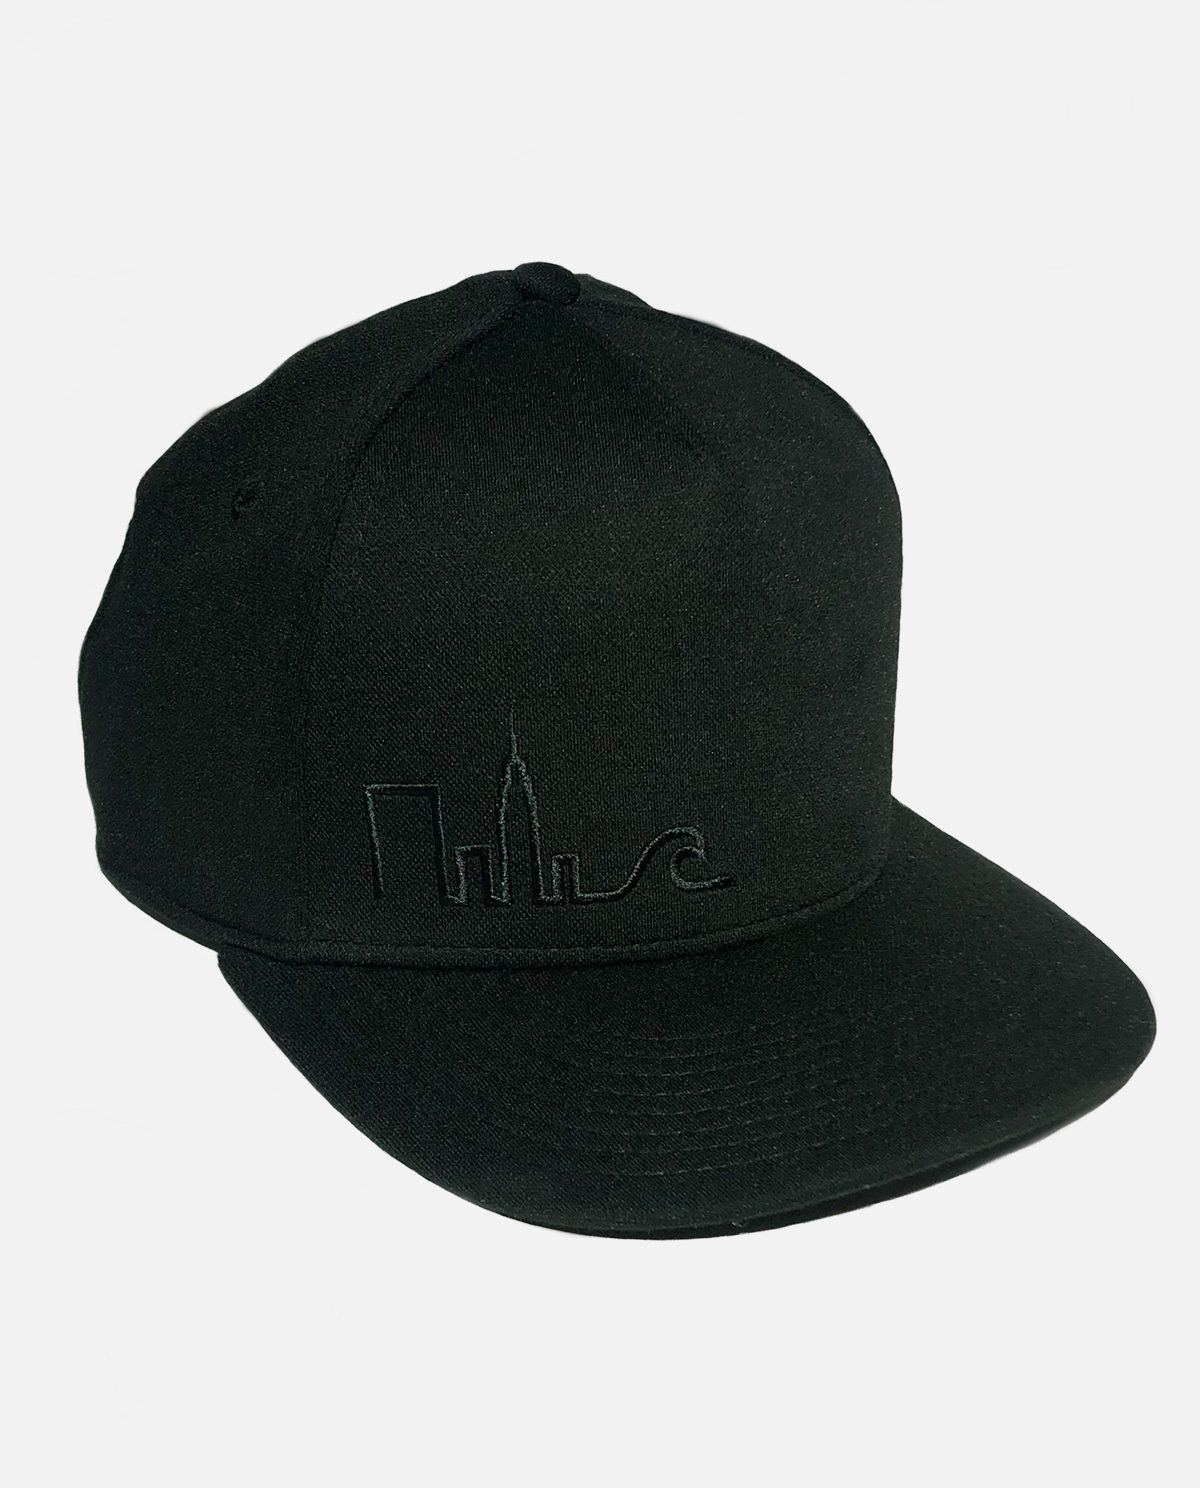 nysea-20wintercollection_hat-skyline-black-front